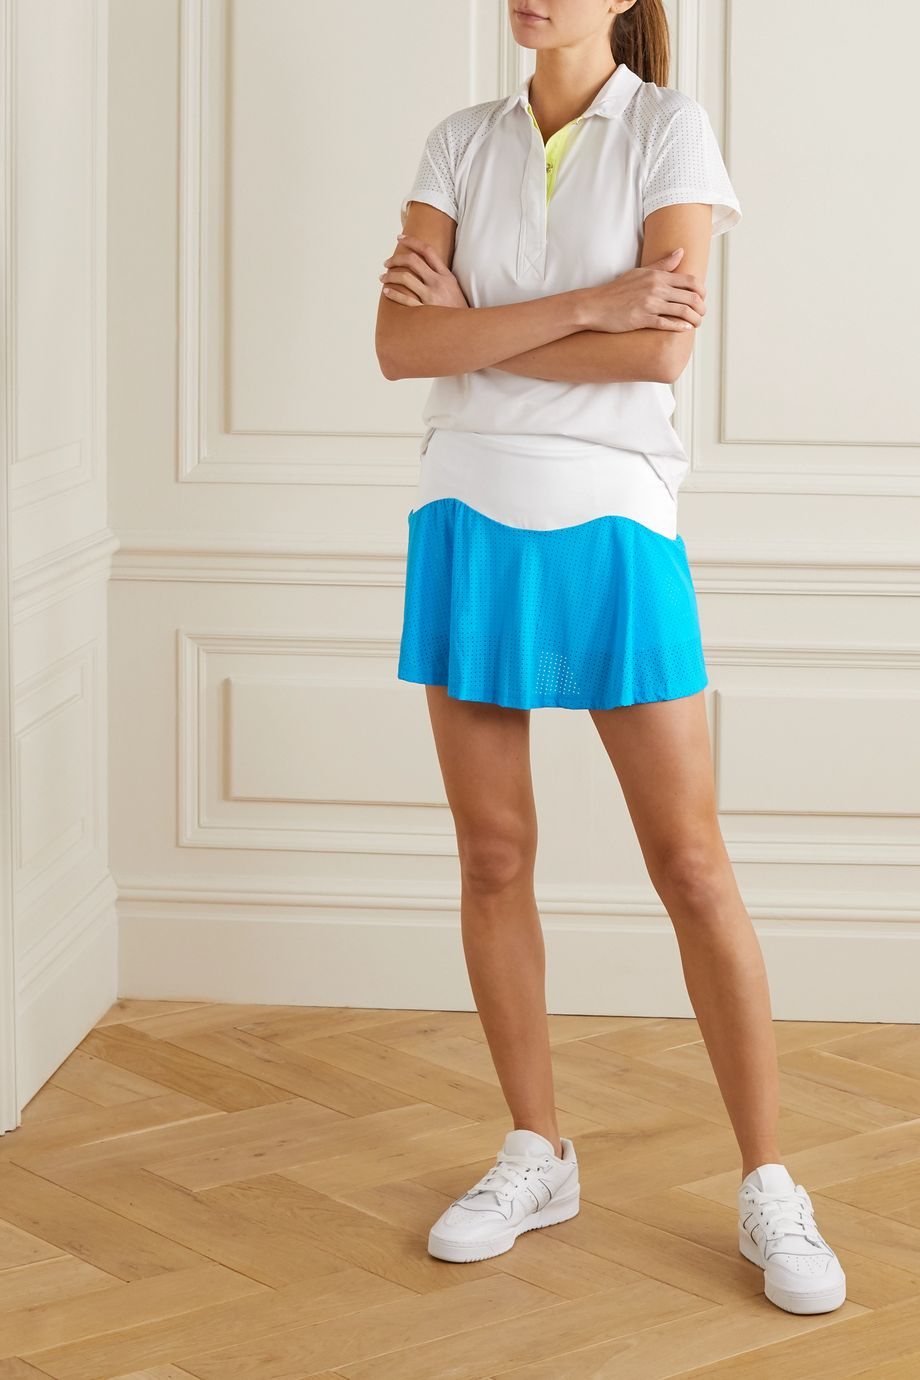 L'Etoile Sport Performance Team mesh-paneled stretch-jersey tennis skirt